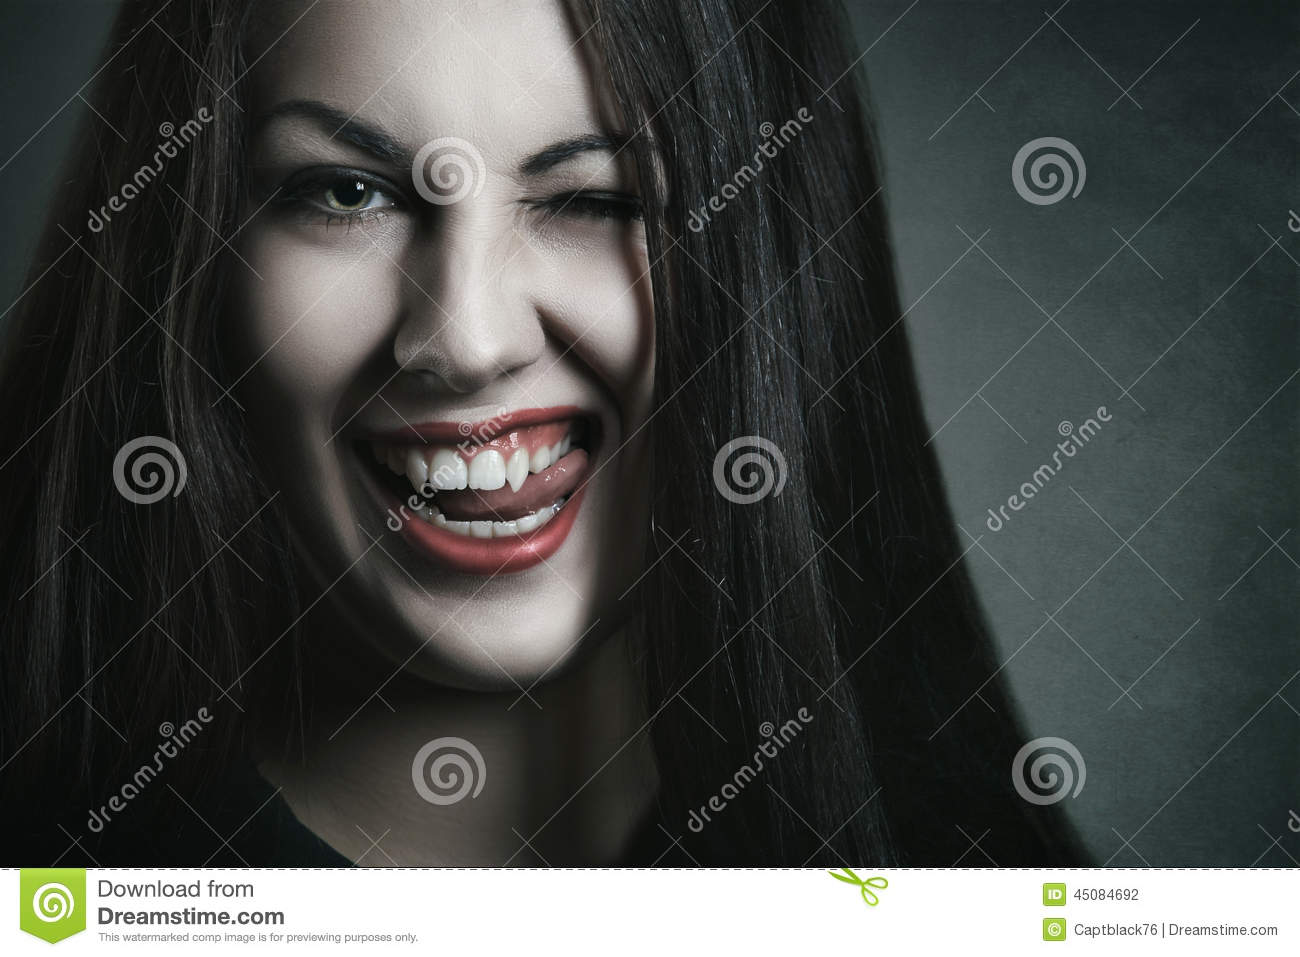 Evil Expression On Vampire Face Stock Photo - Image: 45084692